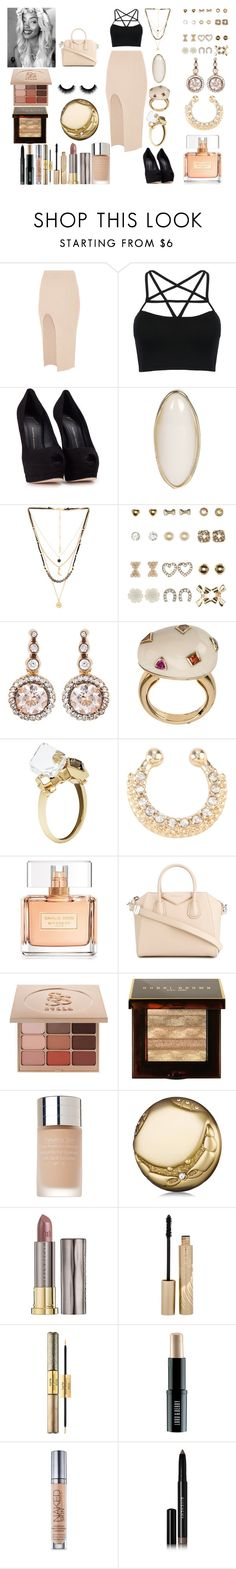 """""""Untitled #703"""" by asiebenthaler ❤ liked on Polyvore featuring Maurie & Eve, WithChic, Giuseppe Zanotti, Boohoo, Ettika, Charlotte Russe, Selim Mouzannar, BIBI VAN DER VELDEN, Givenchy and Stila"""